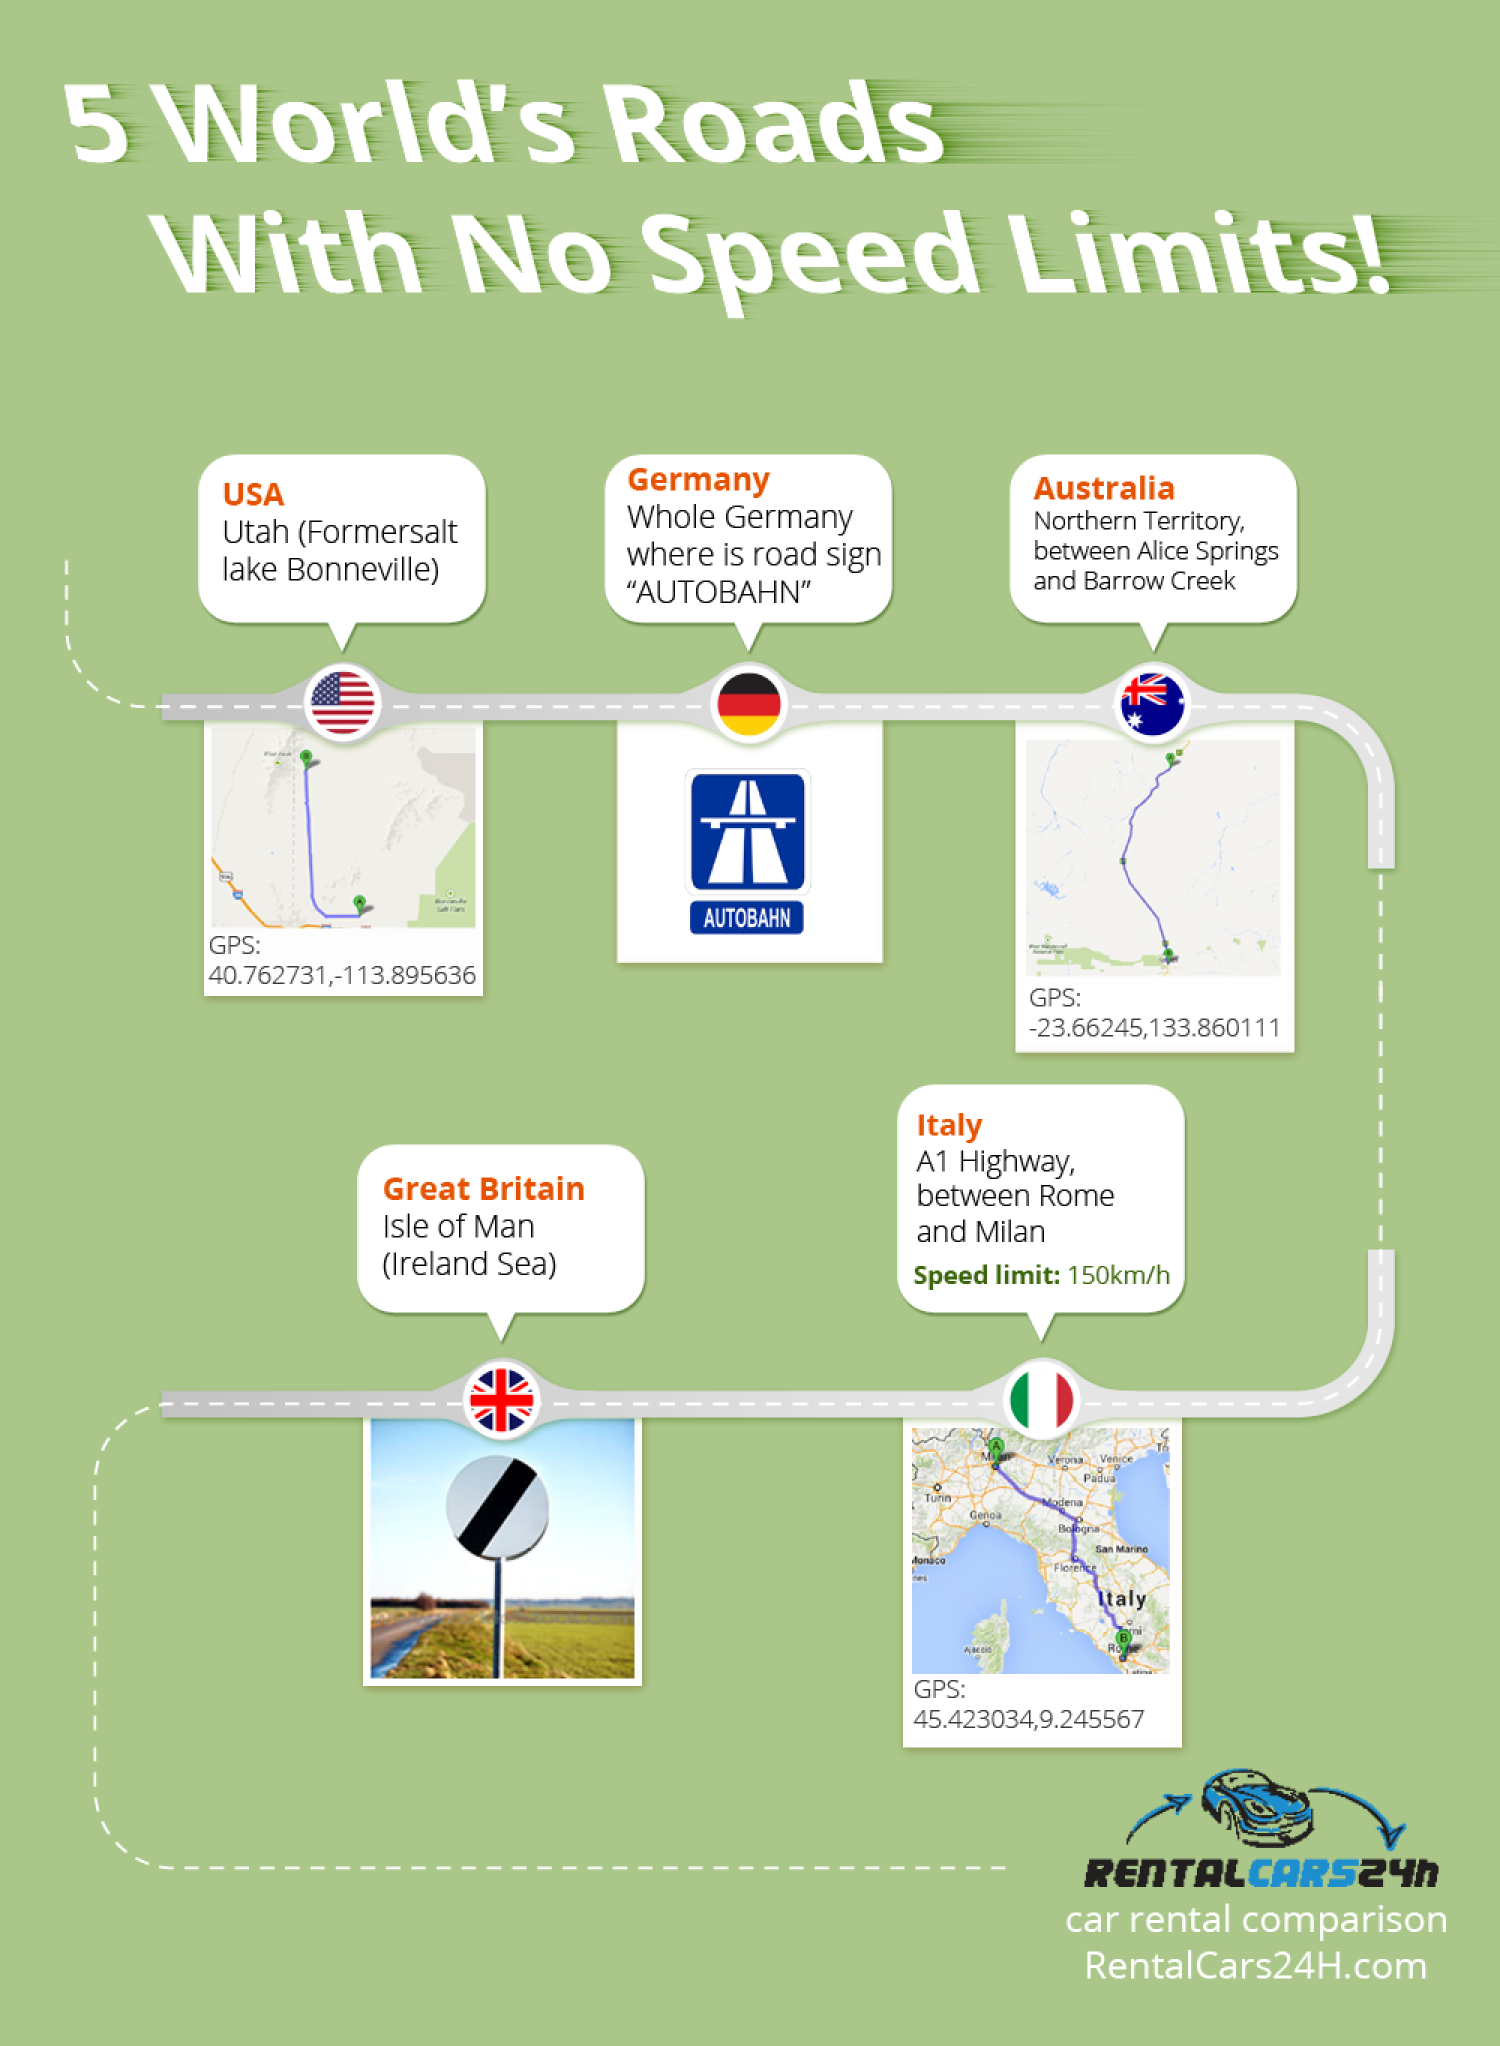 5 World's Roads With NO Speed Limits! Infographic